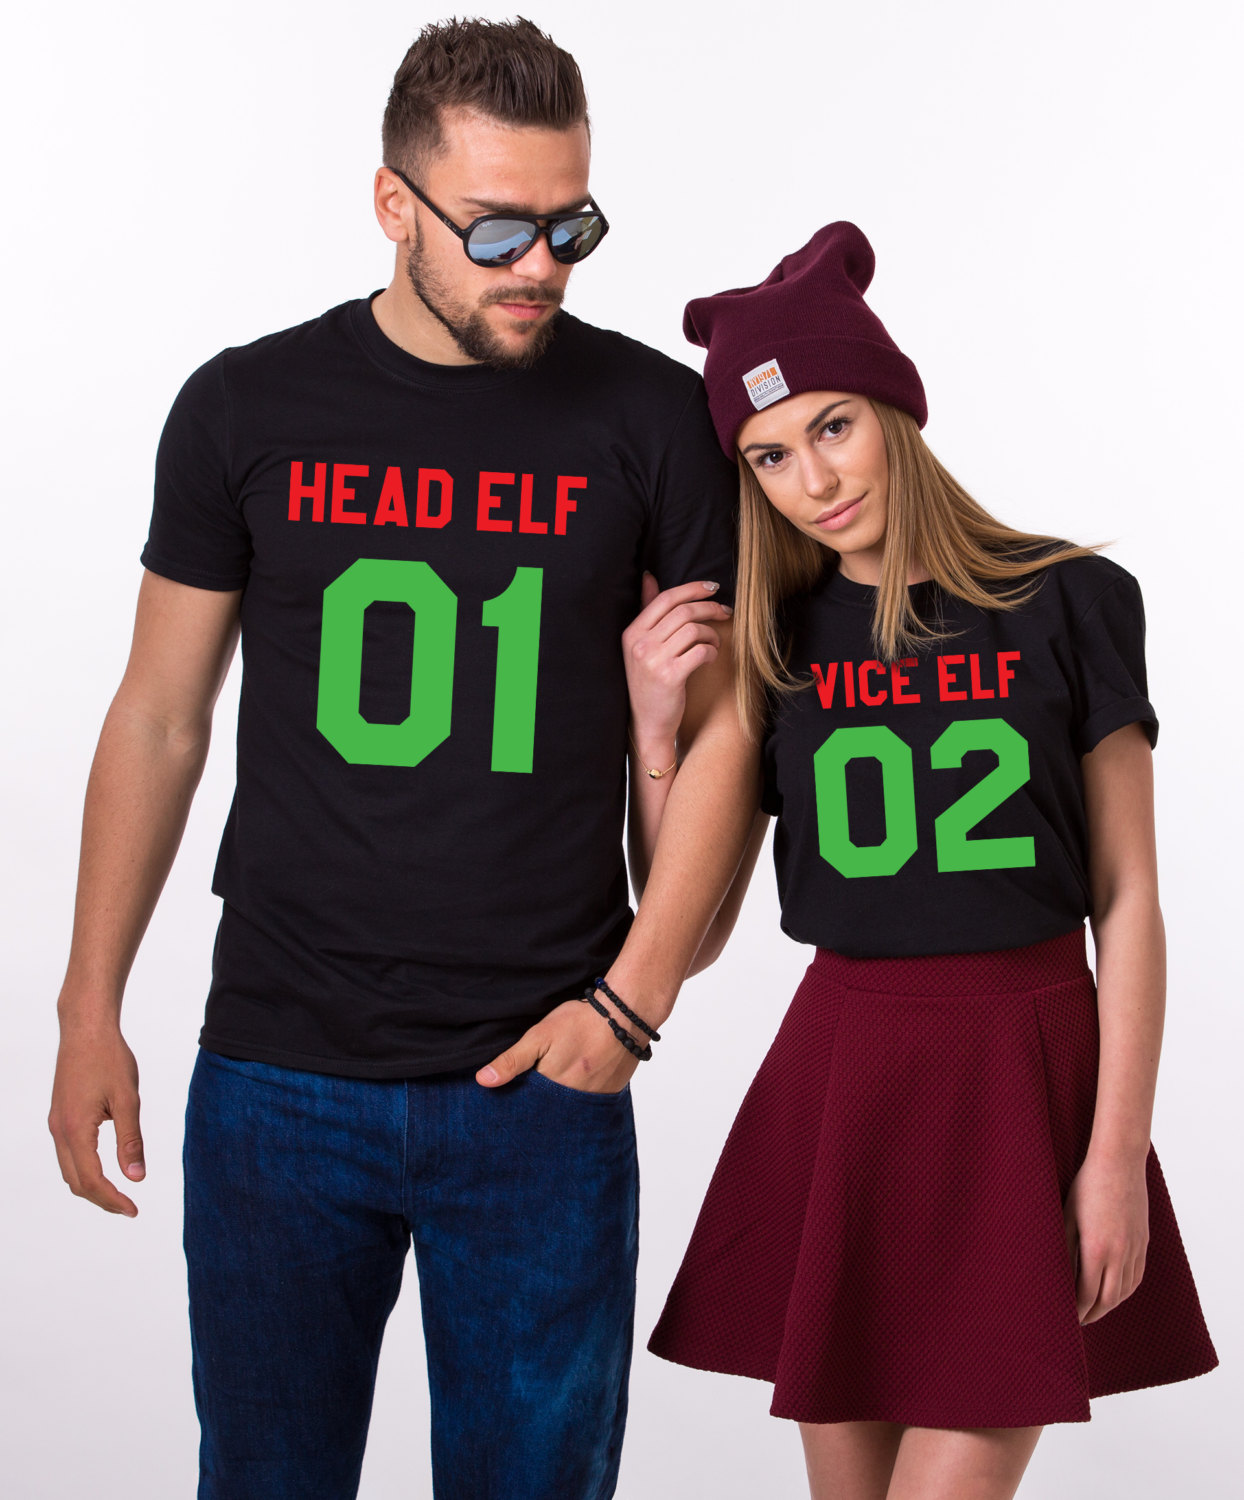 Head Elf, Vice Elf, Matching Couples Christmas Shirts - Awesome ...